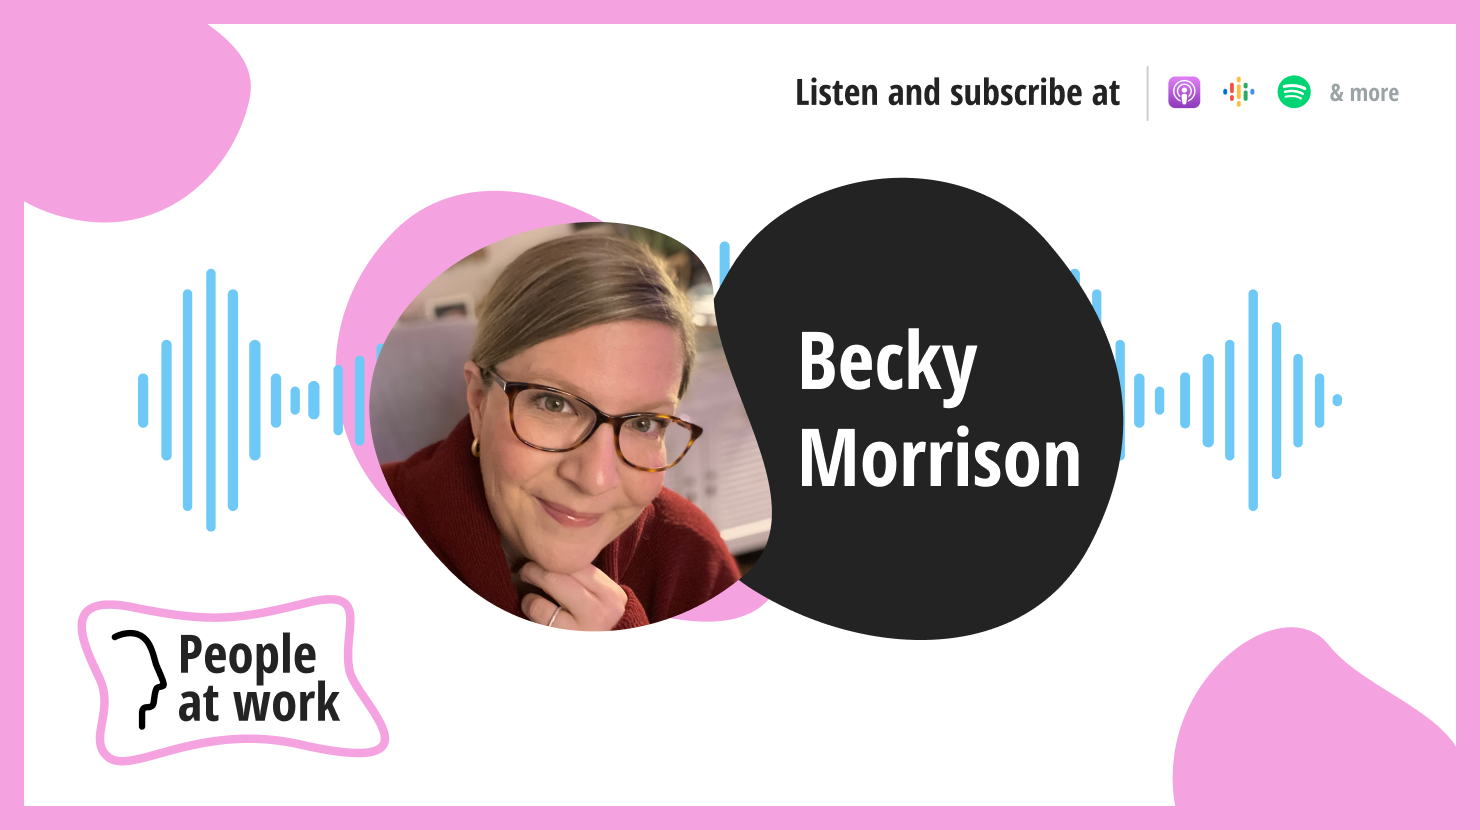 There's a recipe for happiness with Becky Morrison